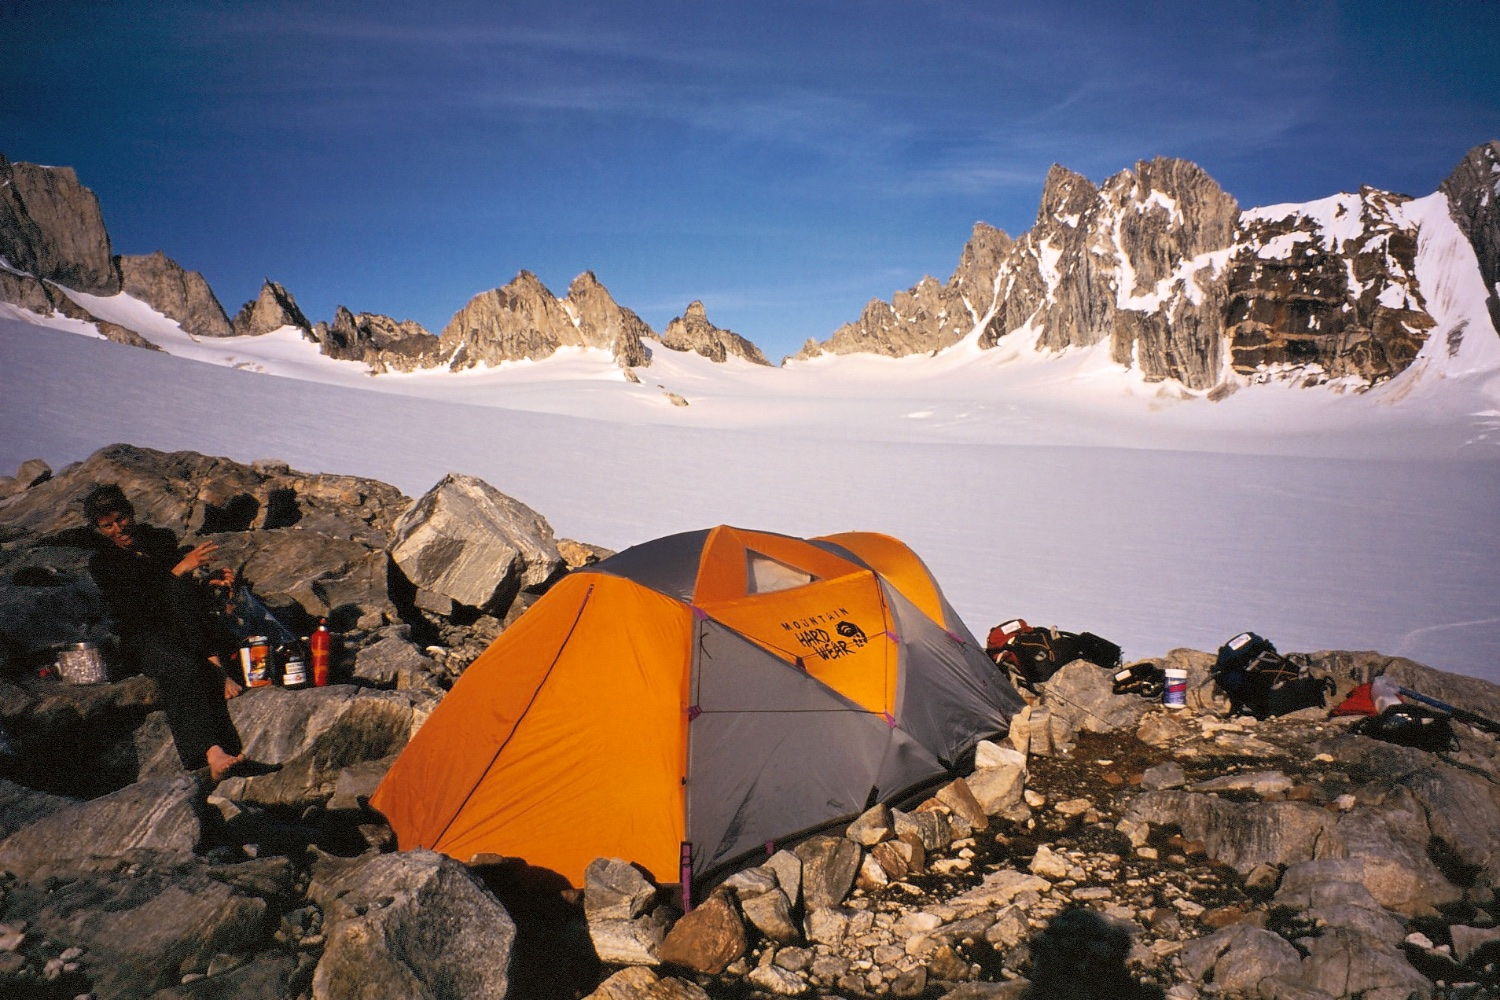 Our camp on a rocky outcrop near the head of a snow basin - the Col de Phantome is behind